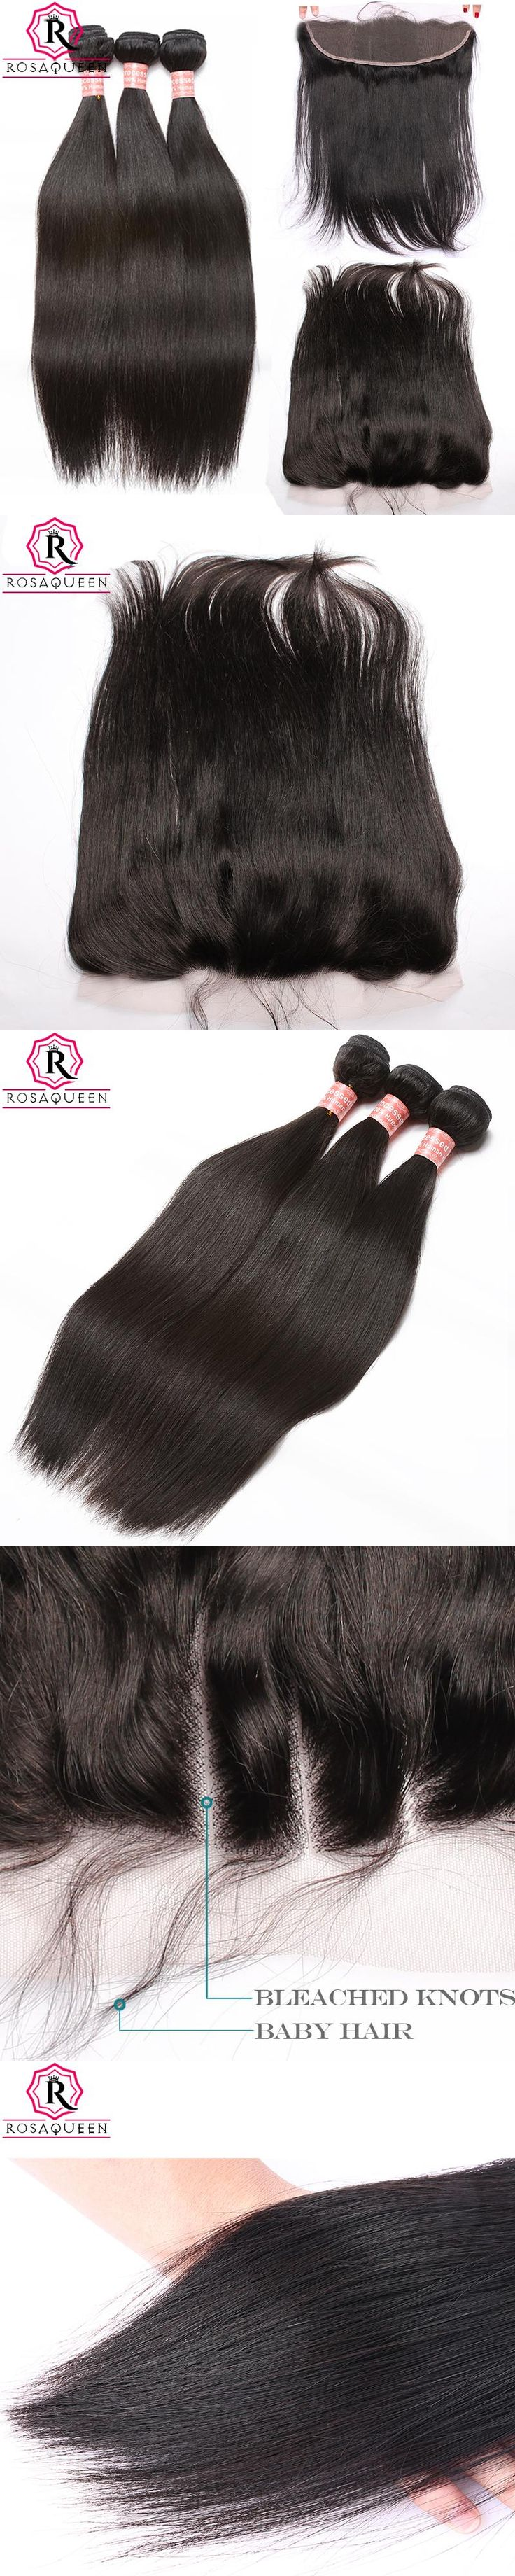 13x4 Lace Frontal Closure Straight Brazilian Hair Weave 4 Pcs 3 Human Hair Bundles With Closure Virgin Rosa Queen Hair Products